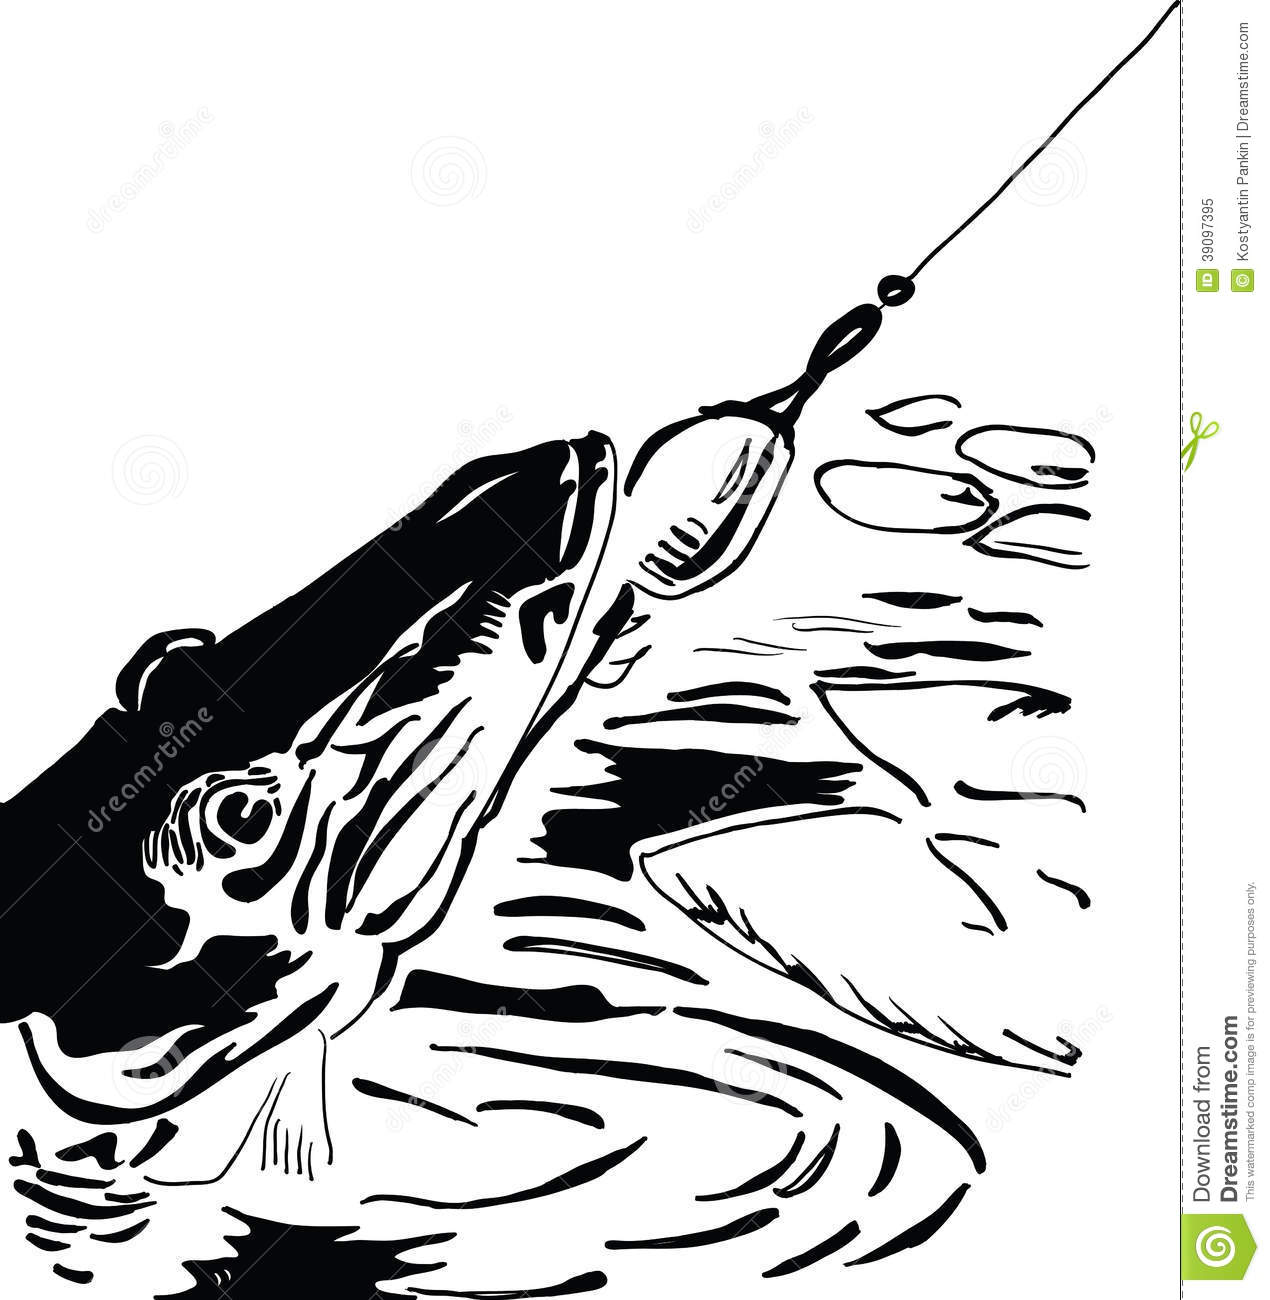 Pike fishing lure stock vector. Image of clip, black ...